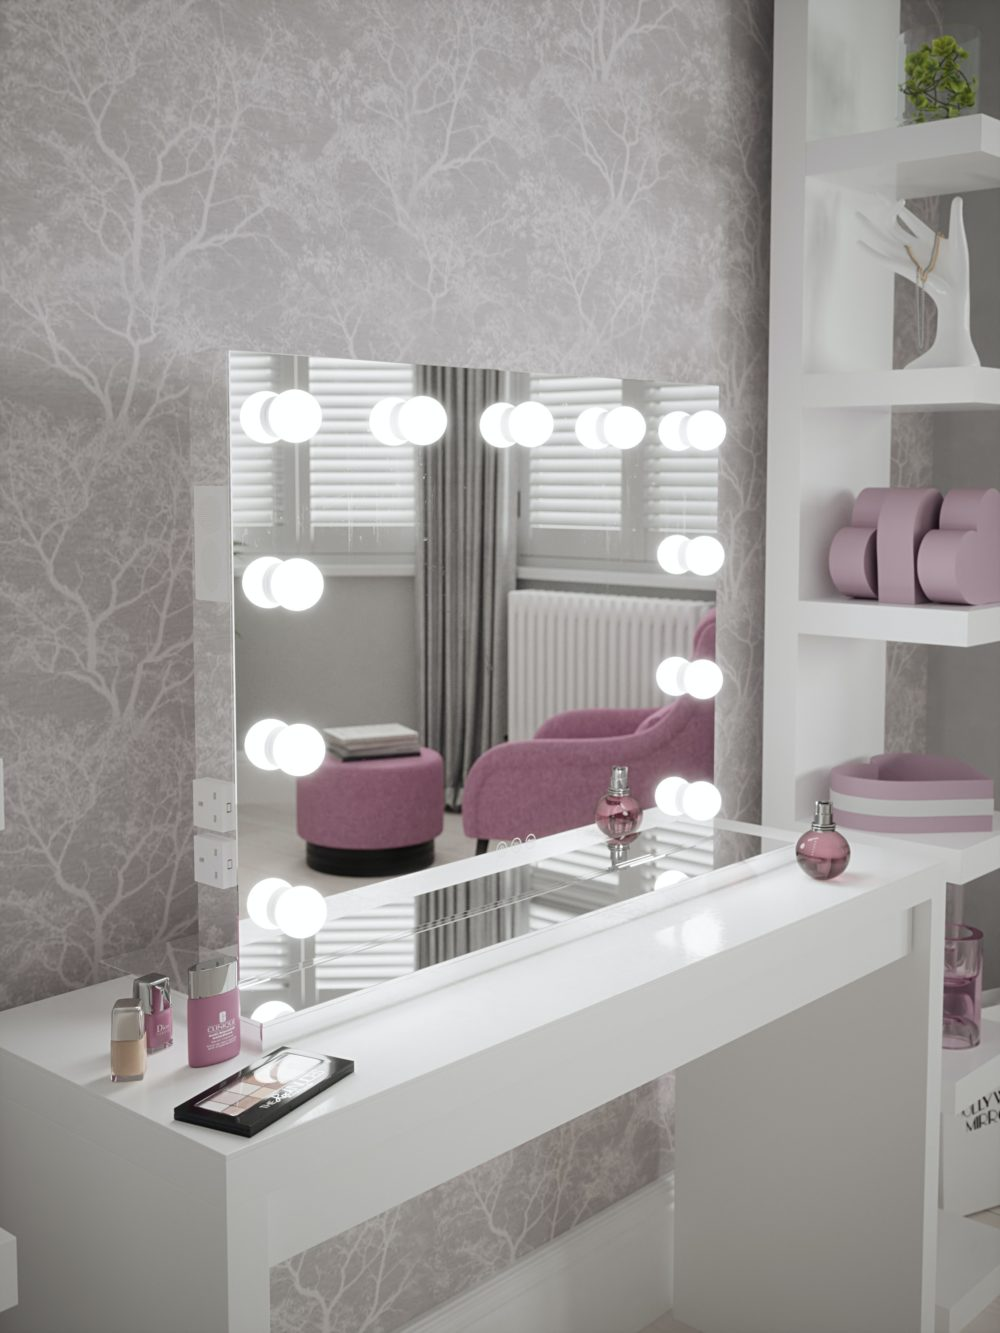 Creating a chic and fashionable dressing area 2